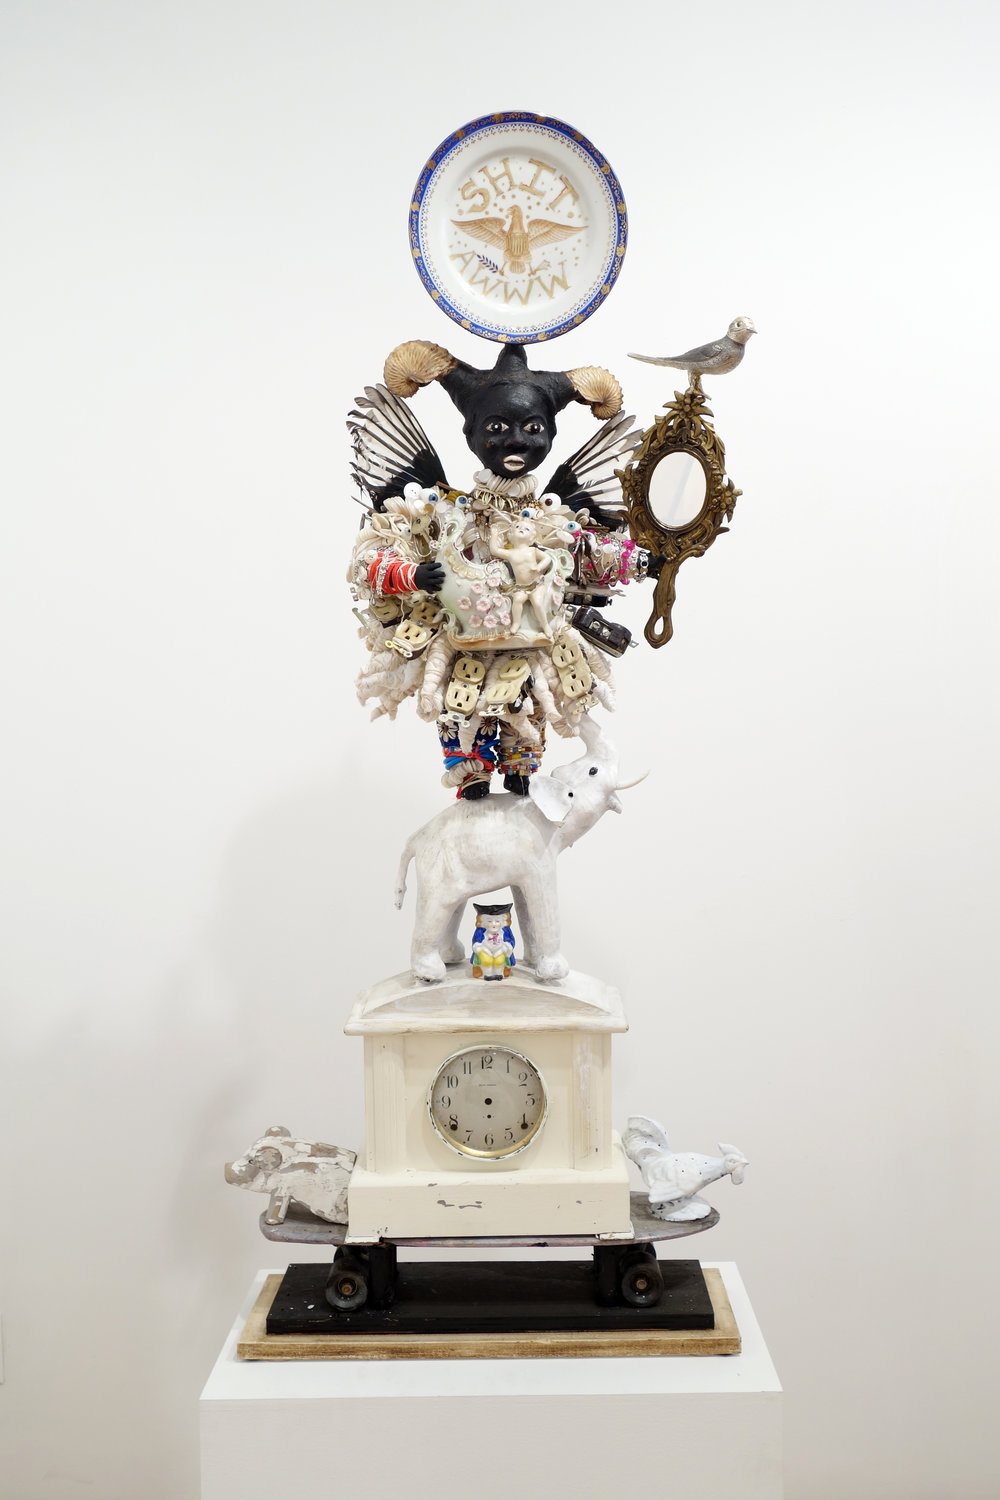 Resilience, 2013, Mixed-media assemblage 55 x 21 x 11 3/4 inches, © Vanessa German, courtesy of the artist and Pavel Zoubok Gallery, New York.